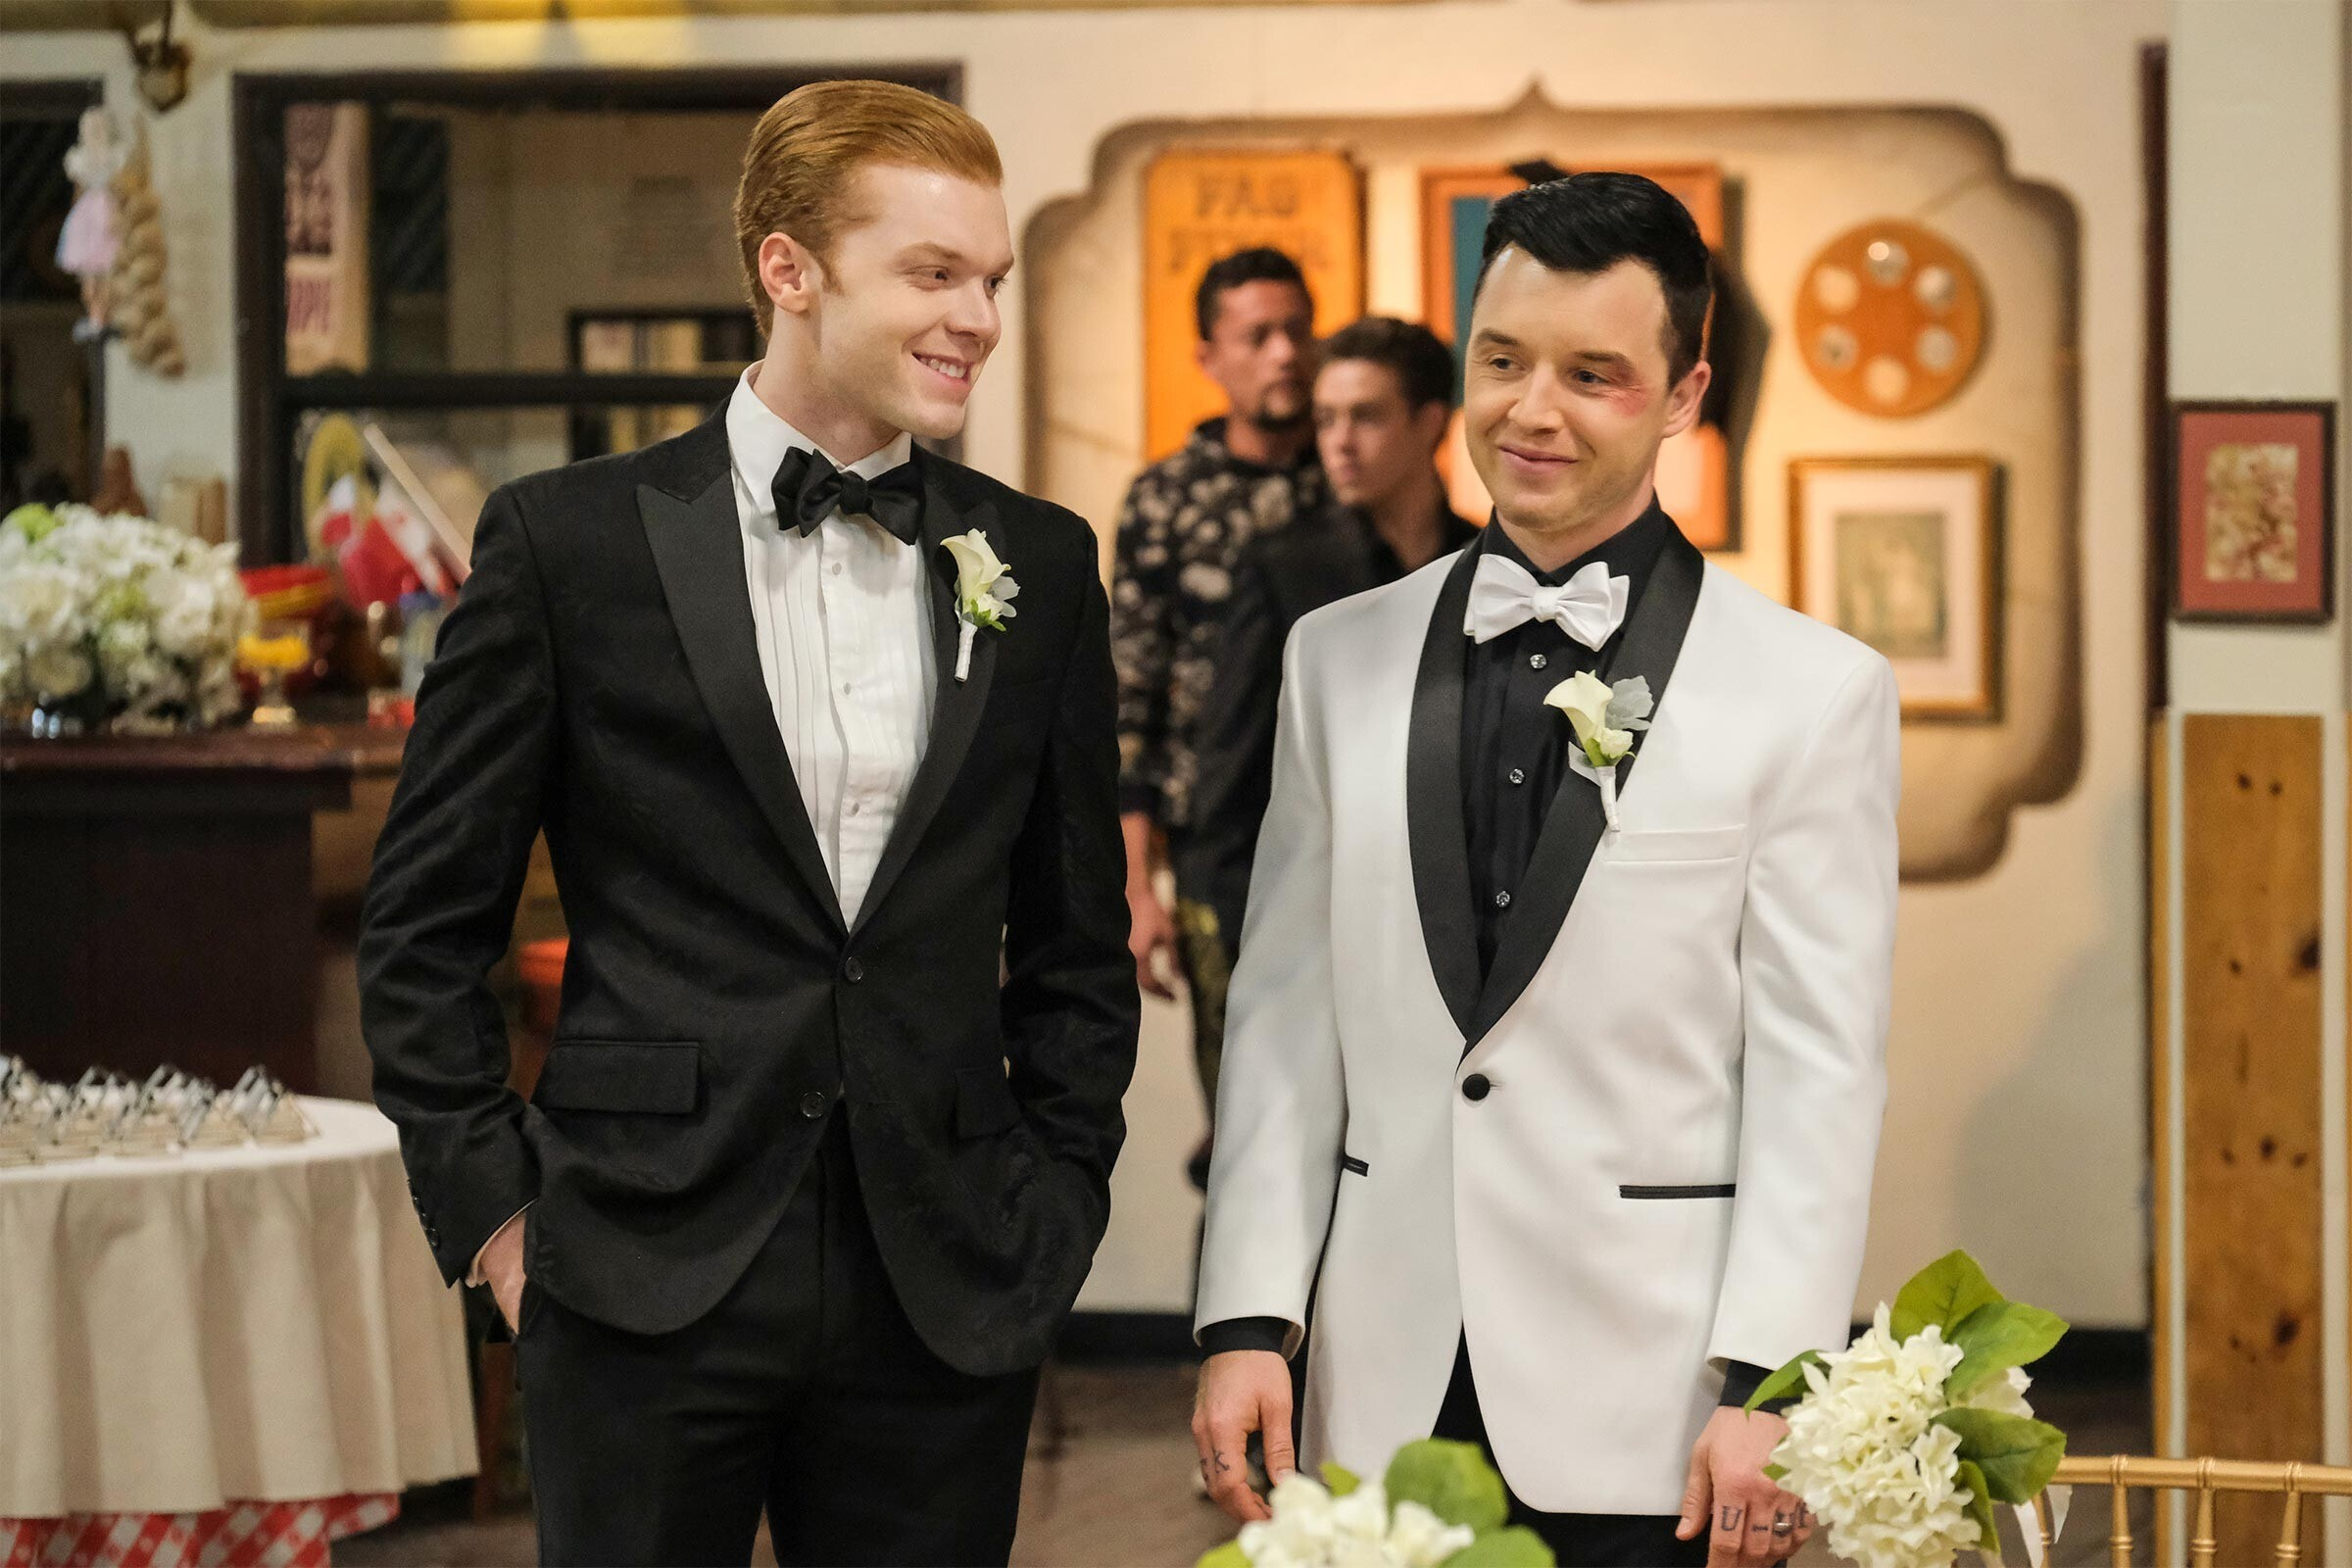 Cameron Monaghan and Noel Fisher at their wedding